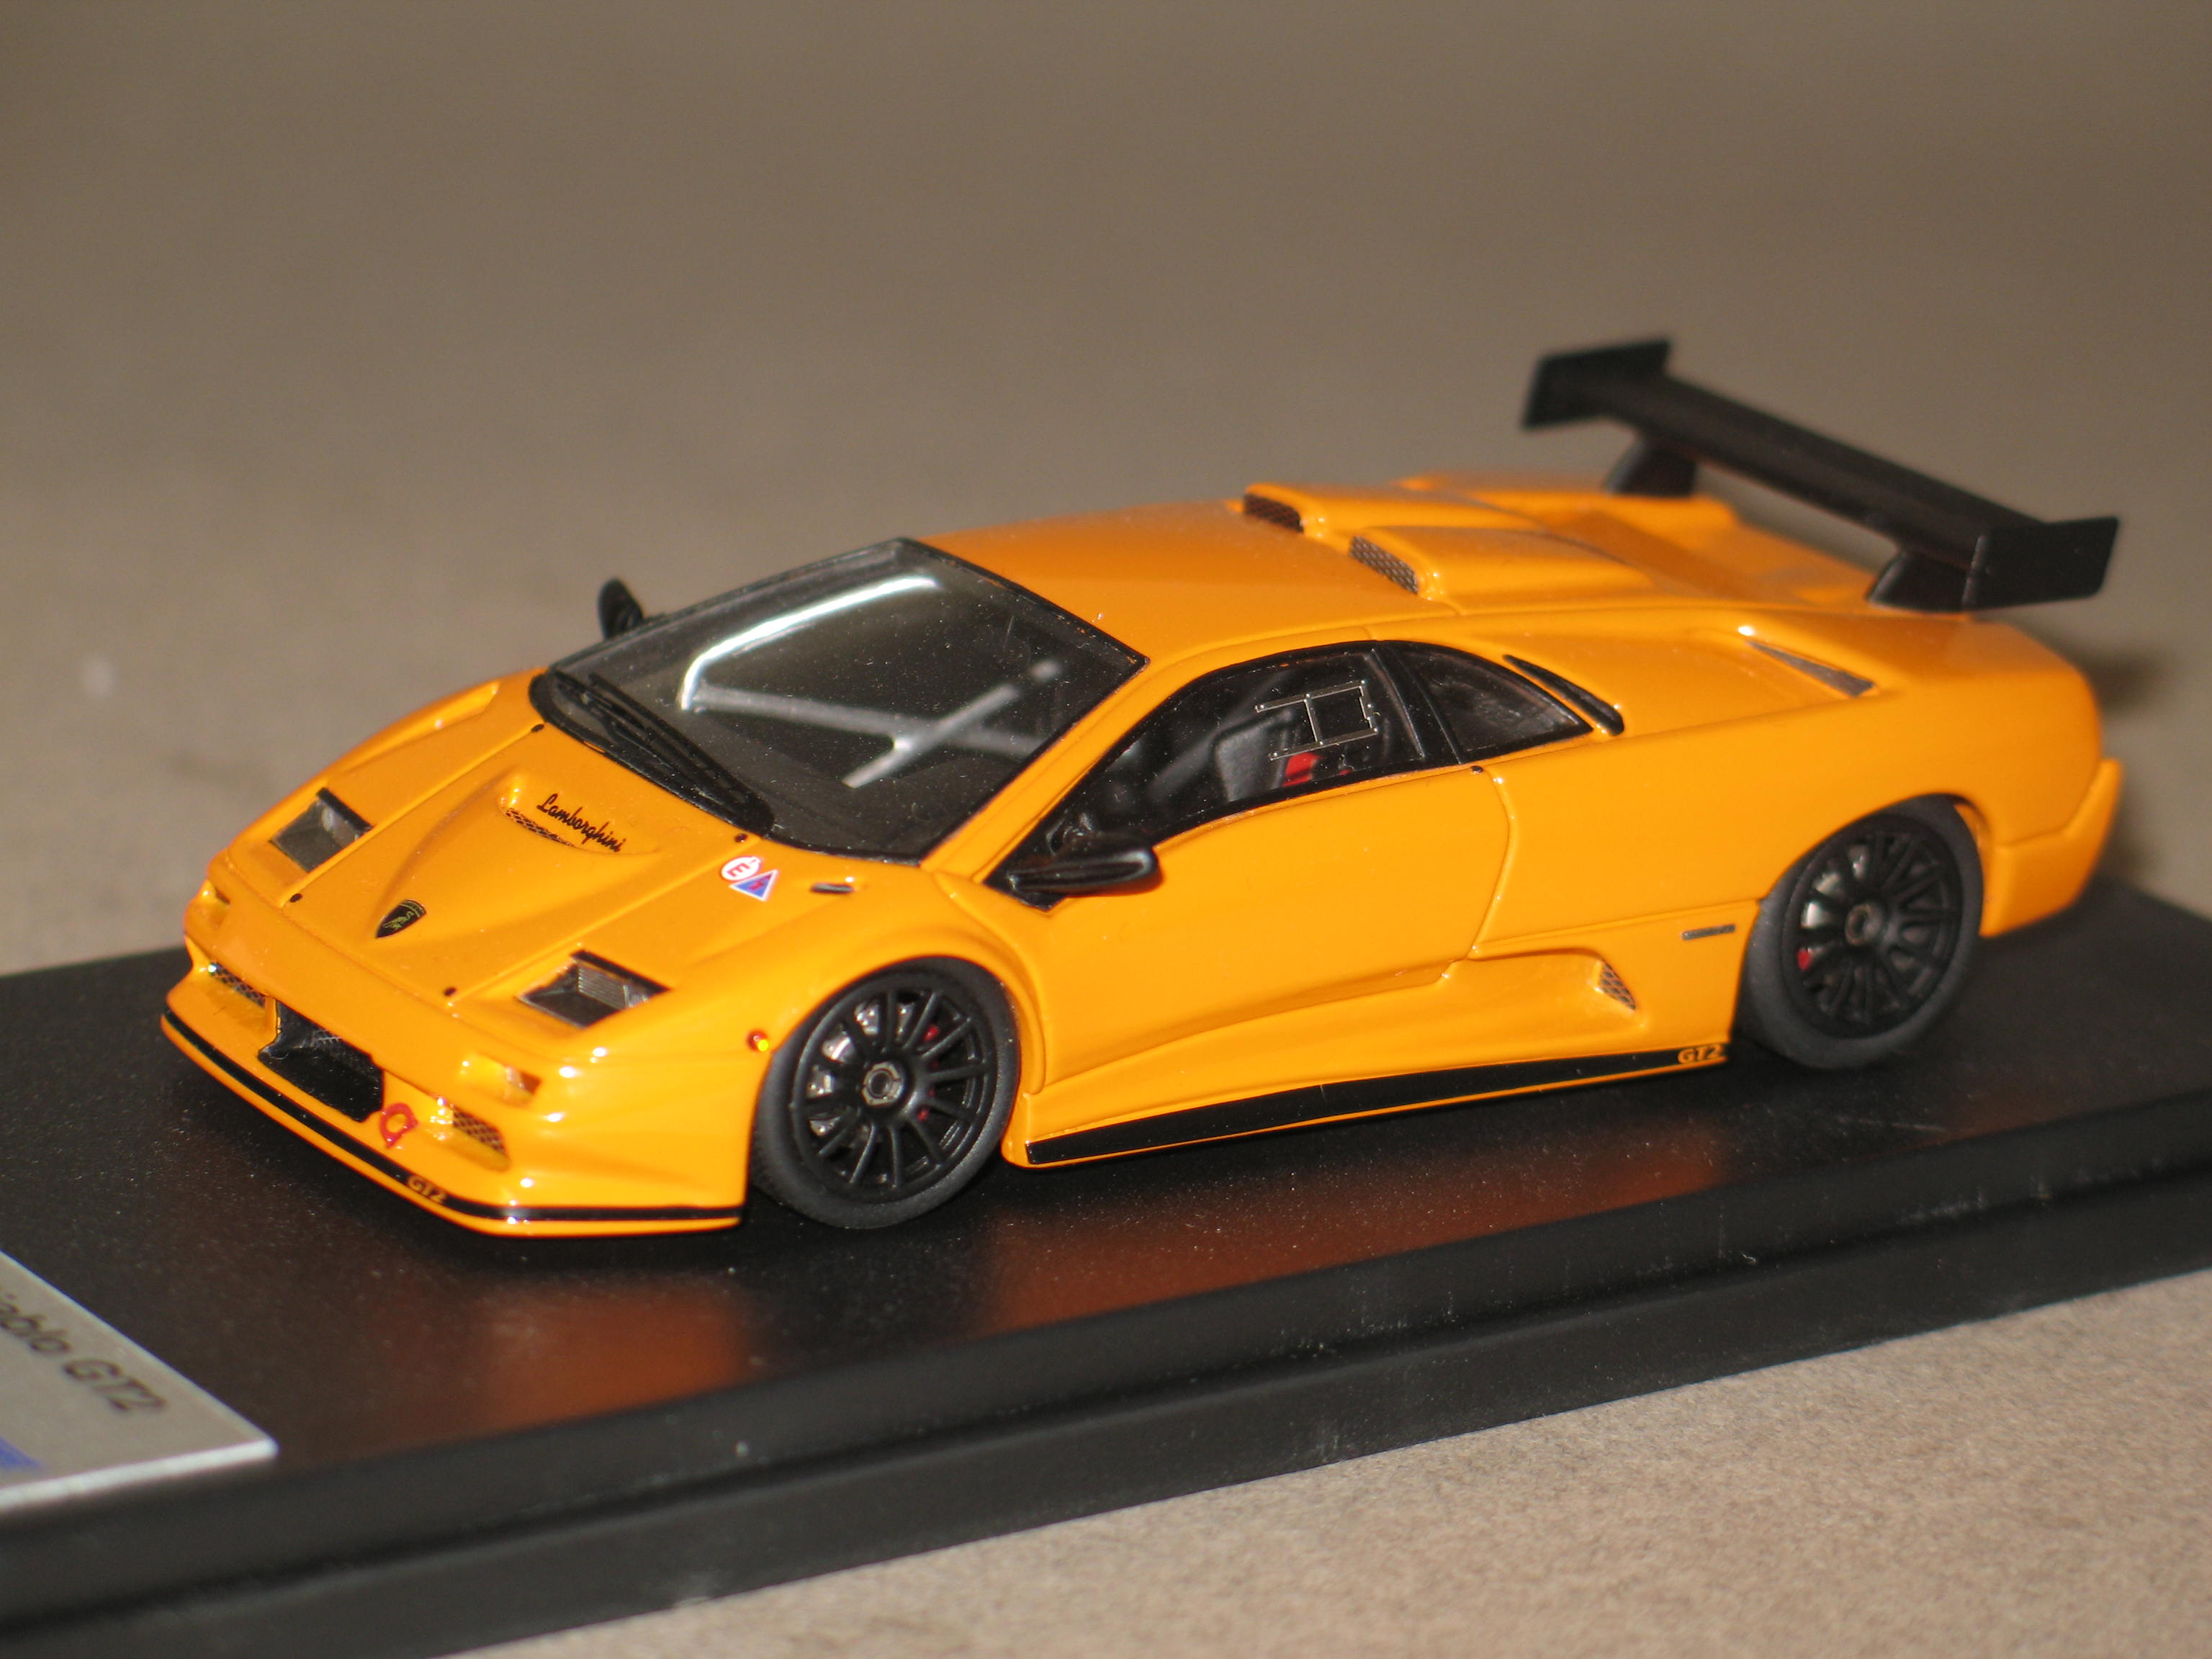 Lamborghini Diablo Gt2 1998 Look Smart 1 43